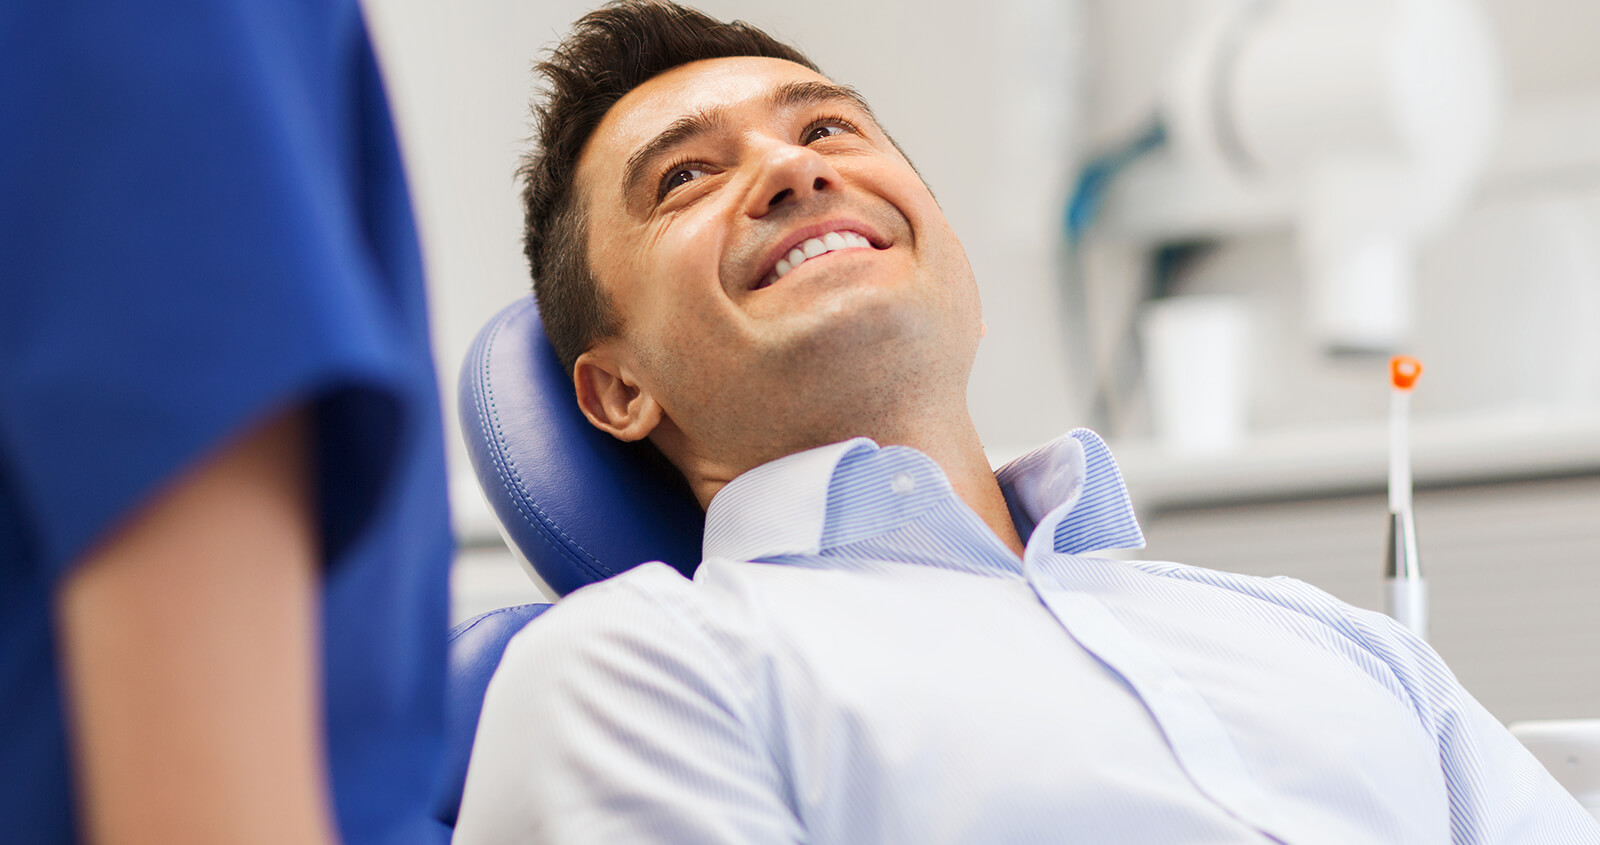 Learn about biomimetic dentistry from an Overland Park, KS dentist